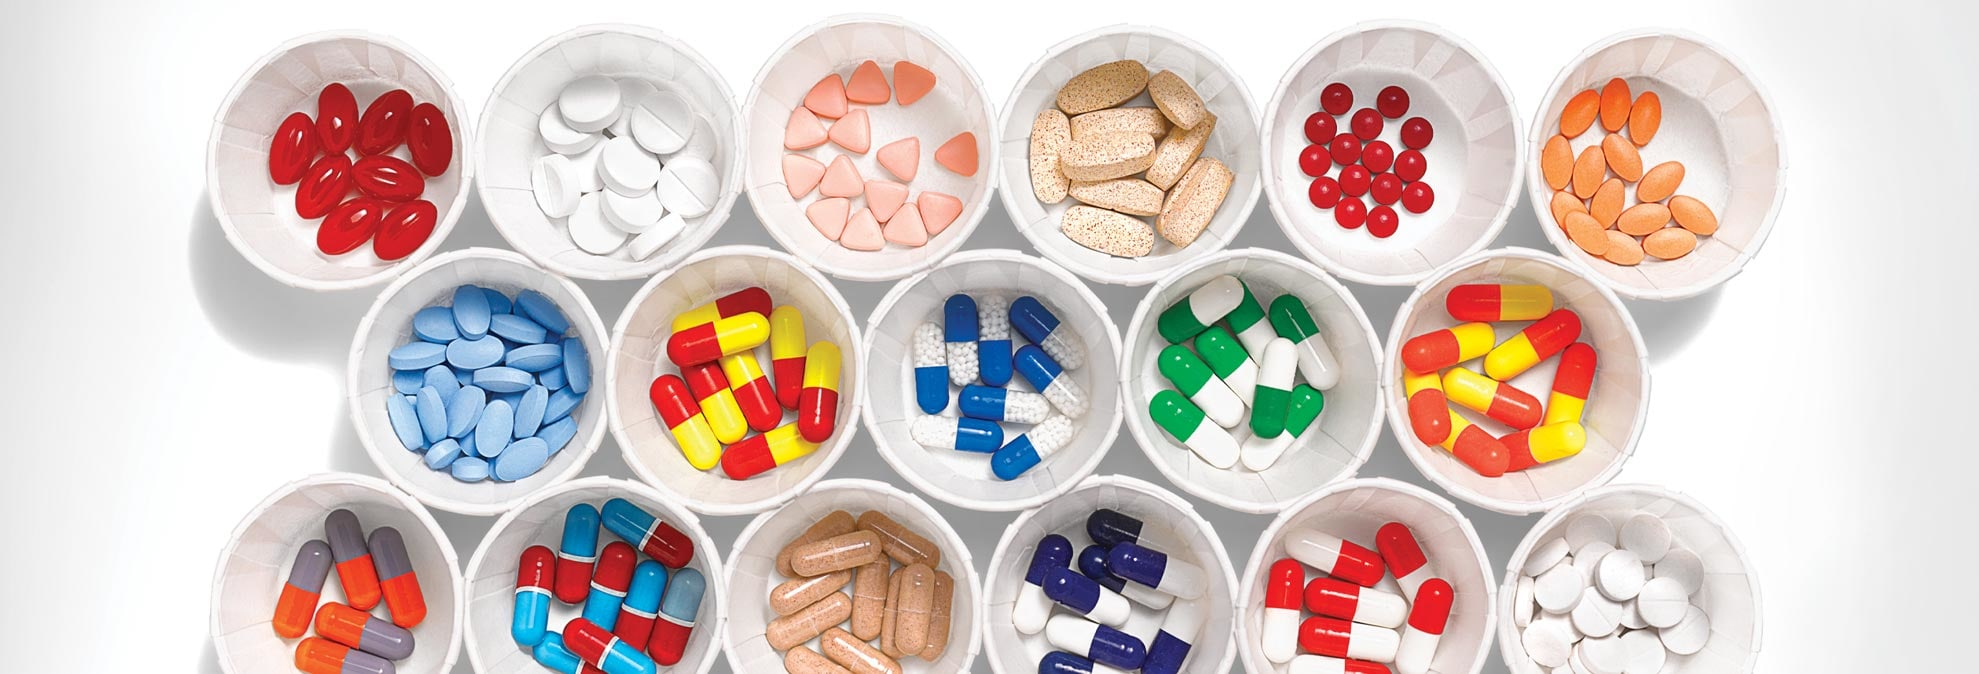 America S Love Affair With Prescription Medication